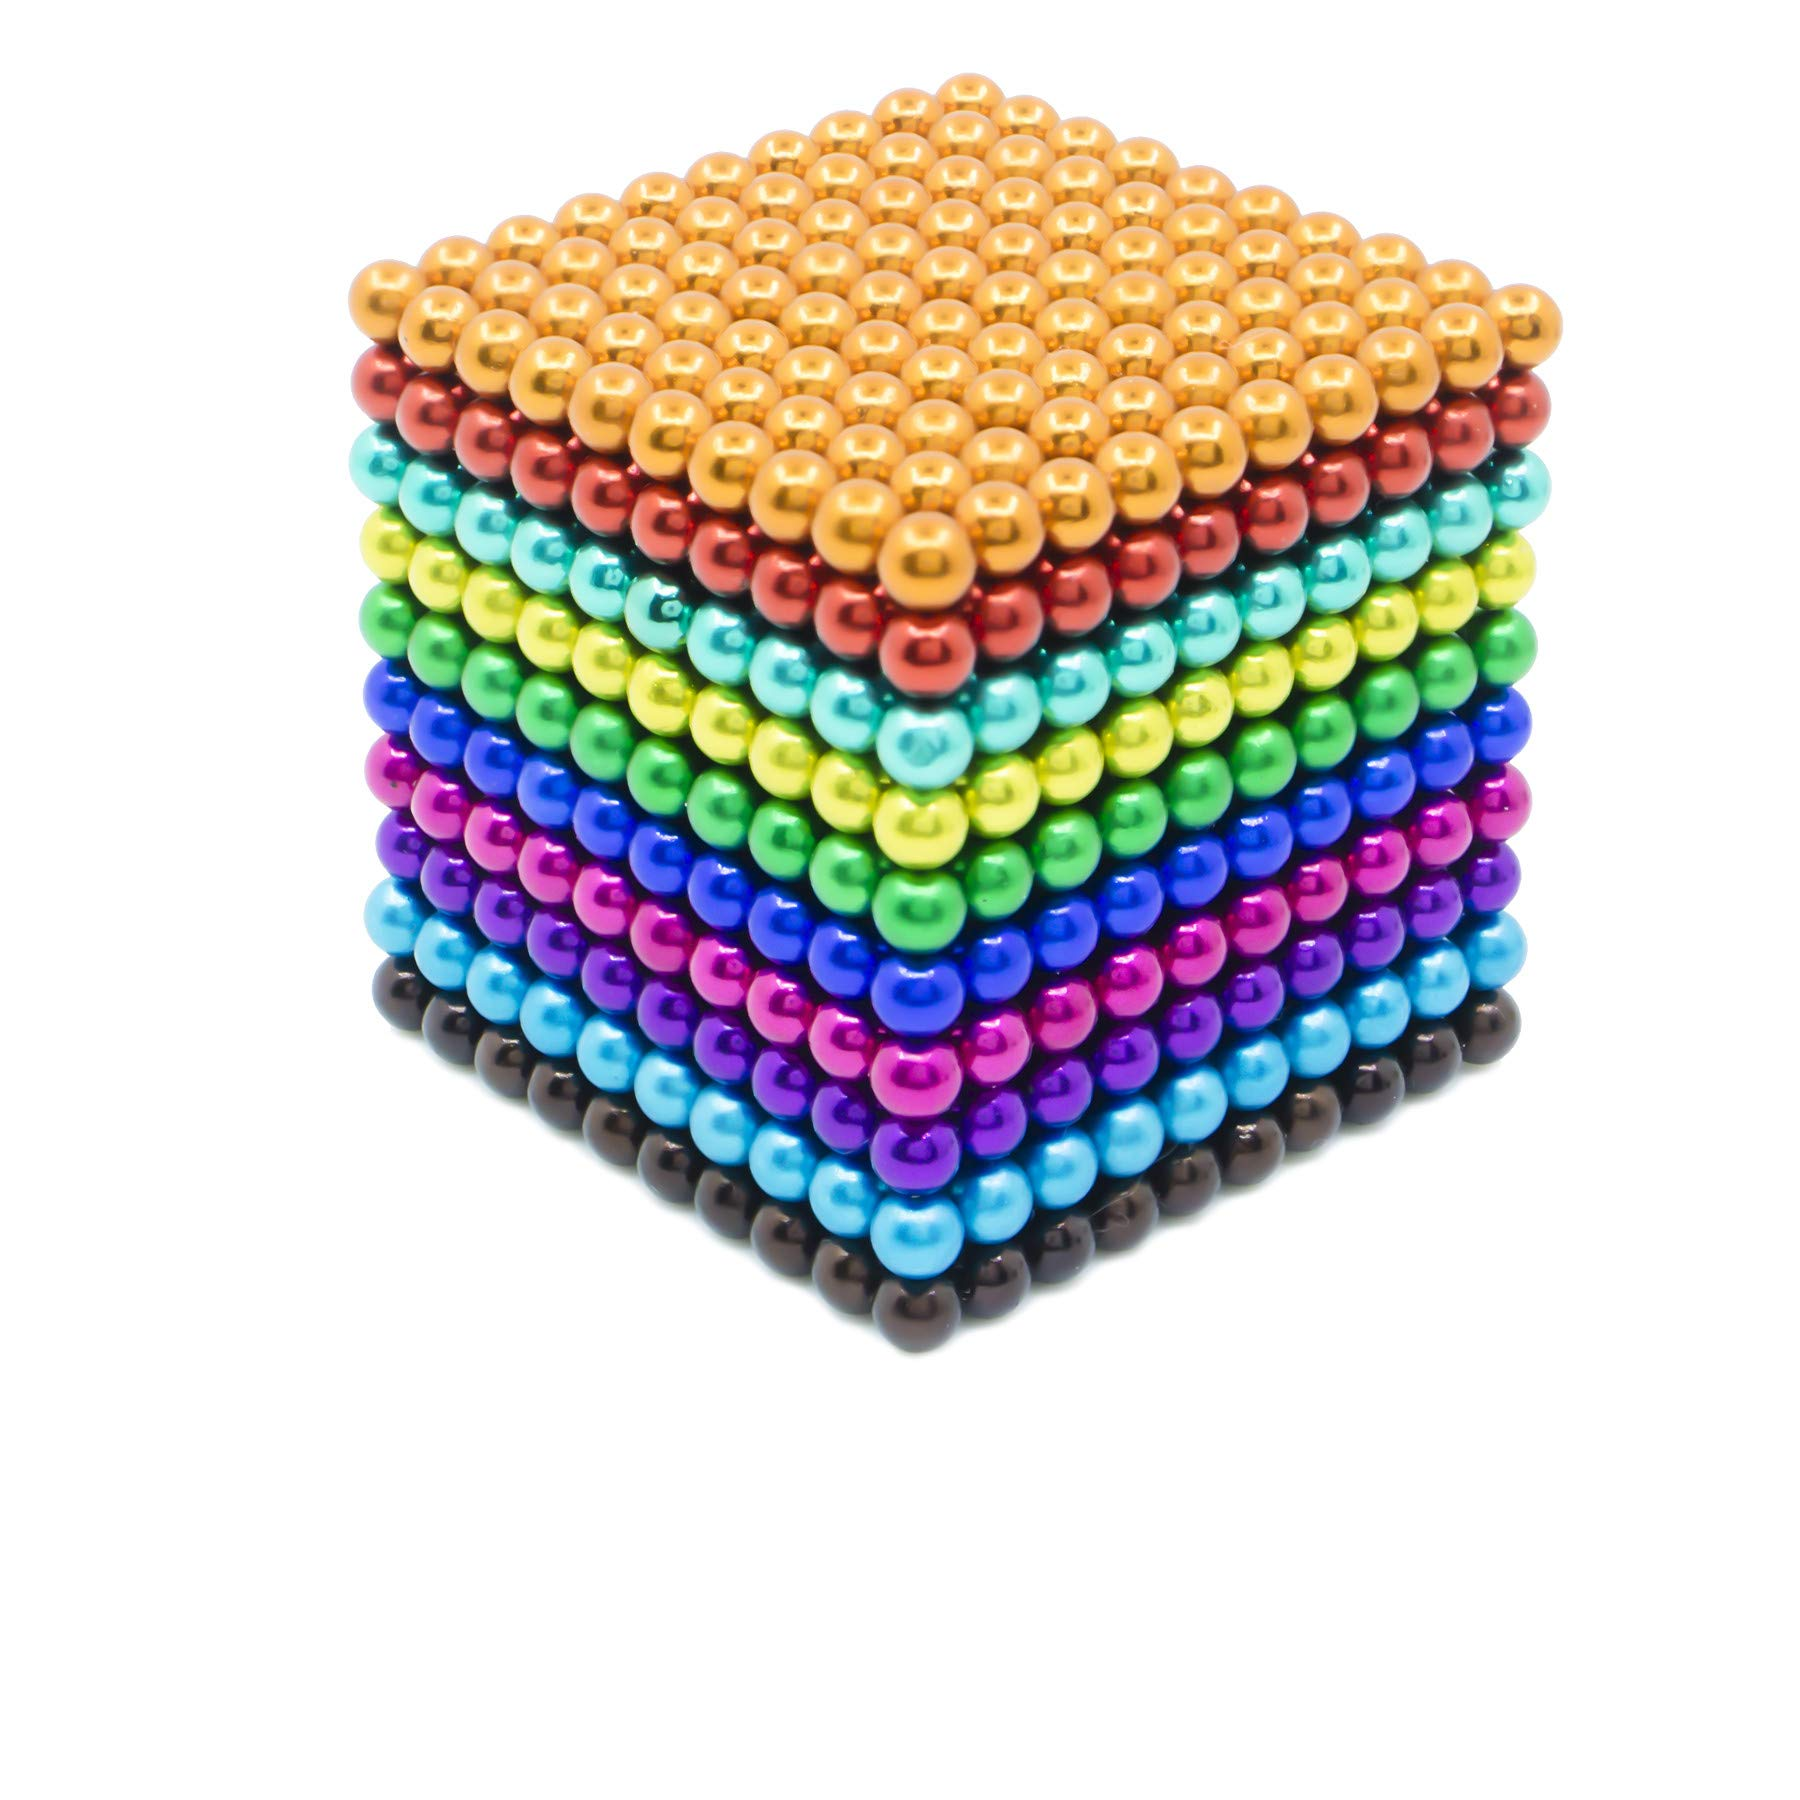 sunsoy 1000 Pieces 5mm Sculpture Building Blocks Toys for Intelligence Learning -Office Toy & Stress Relief for Adults Colorful by sunsoy (Image #8)